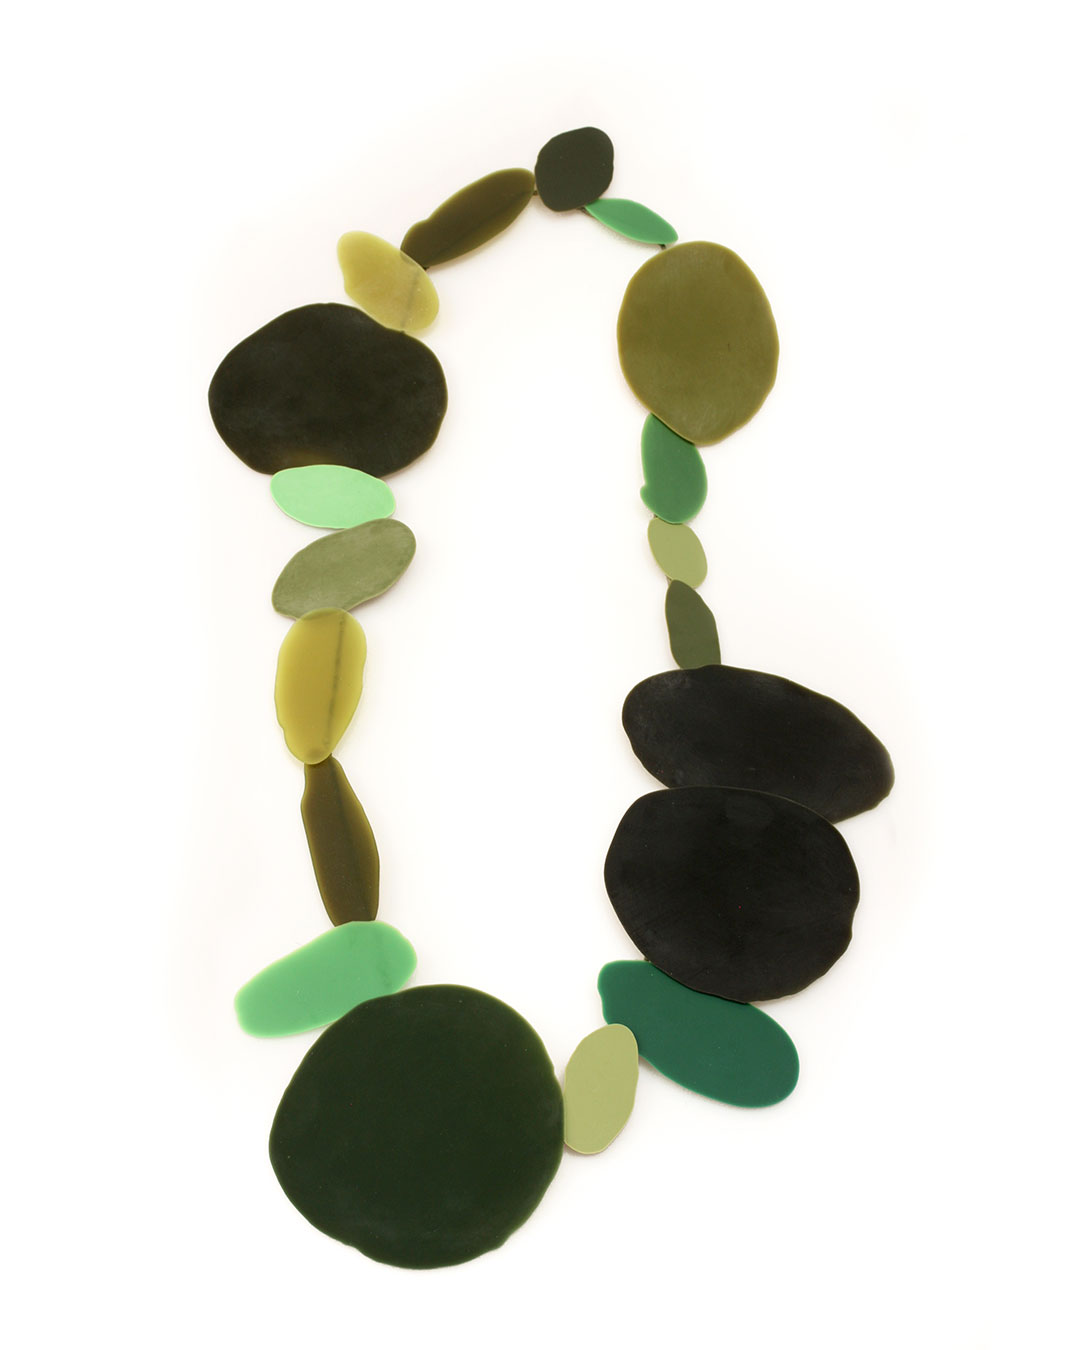 Ela Bauer, necklace, 2020, resin, pigment, jade, 700 x 400 x 15 mm, sold